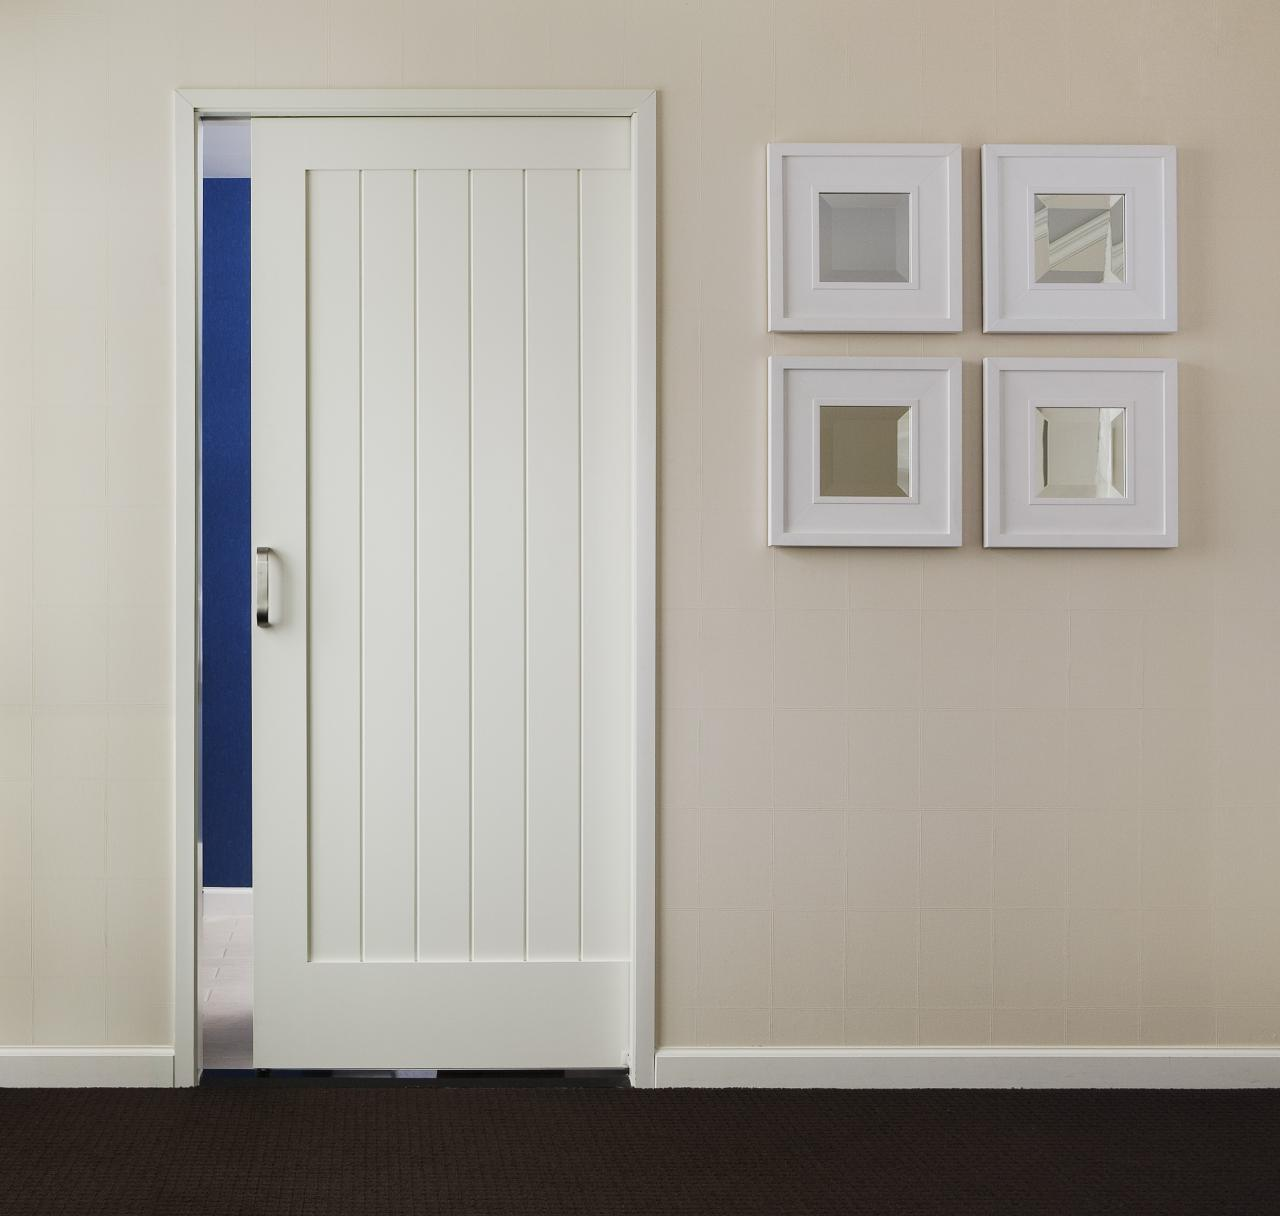 wooddoors mdf wood pediatrics door dutch series rgb paint custom interior standard panel ts trustile grade doors